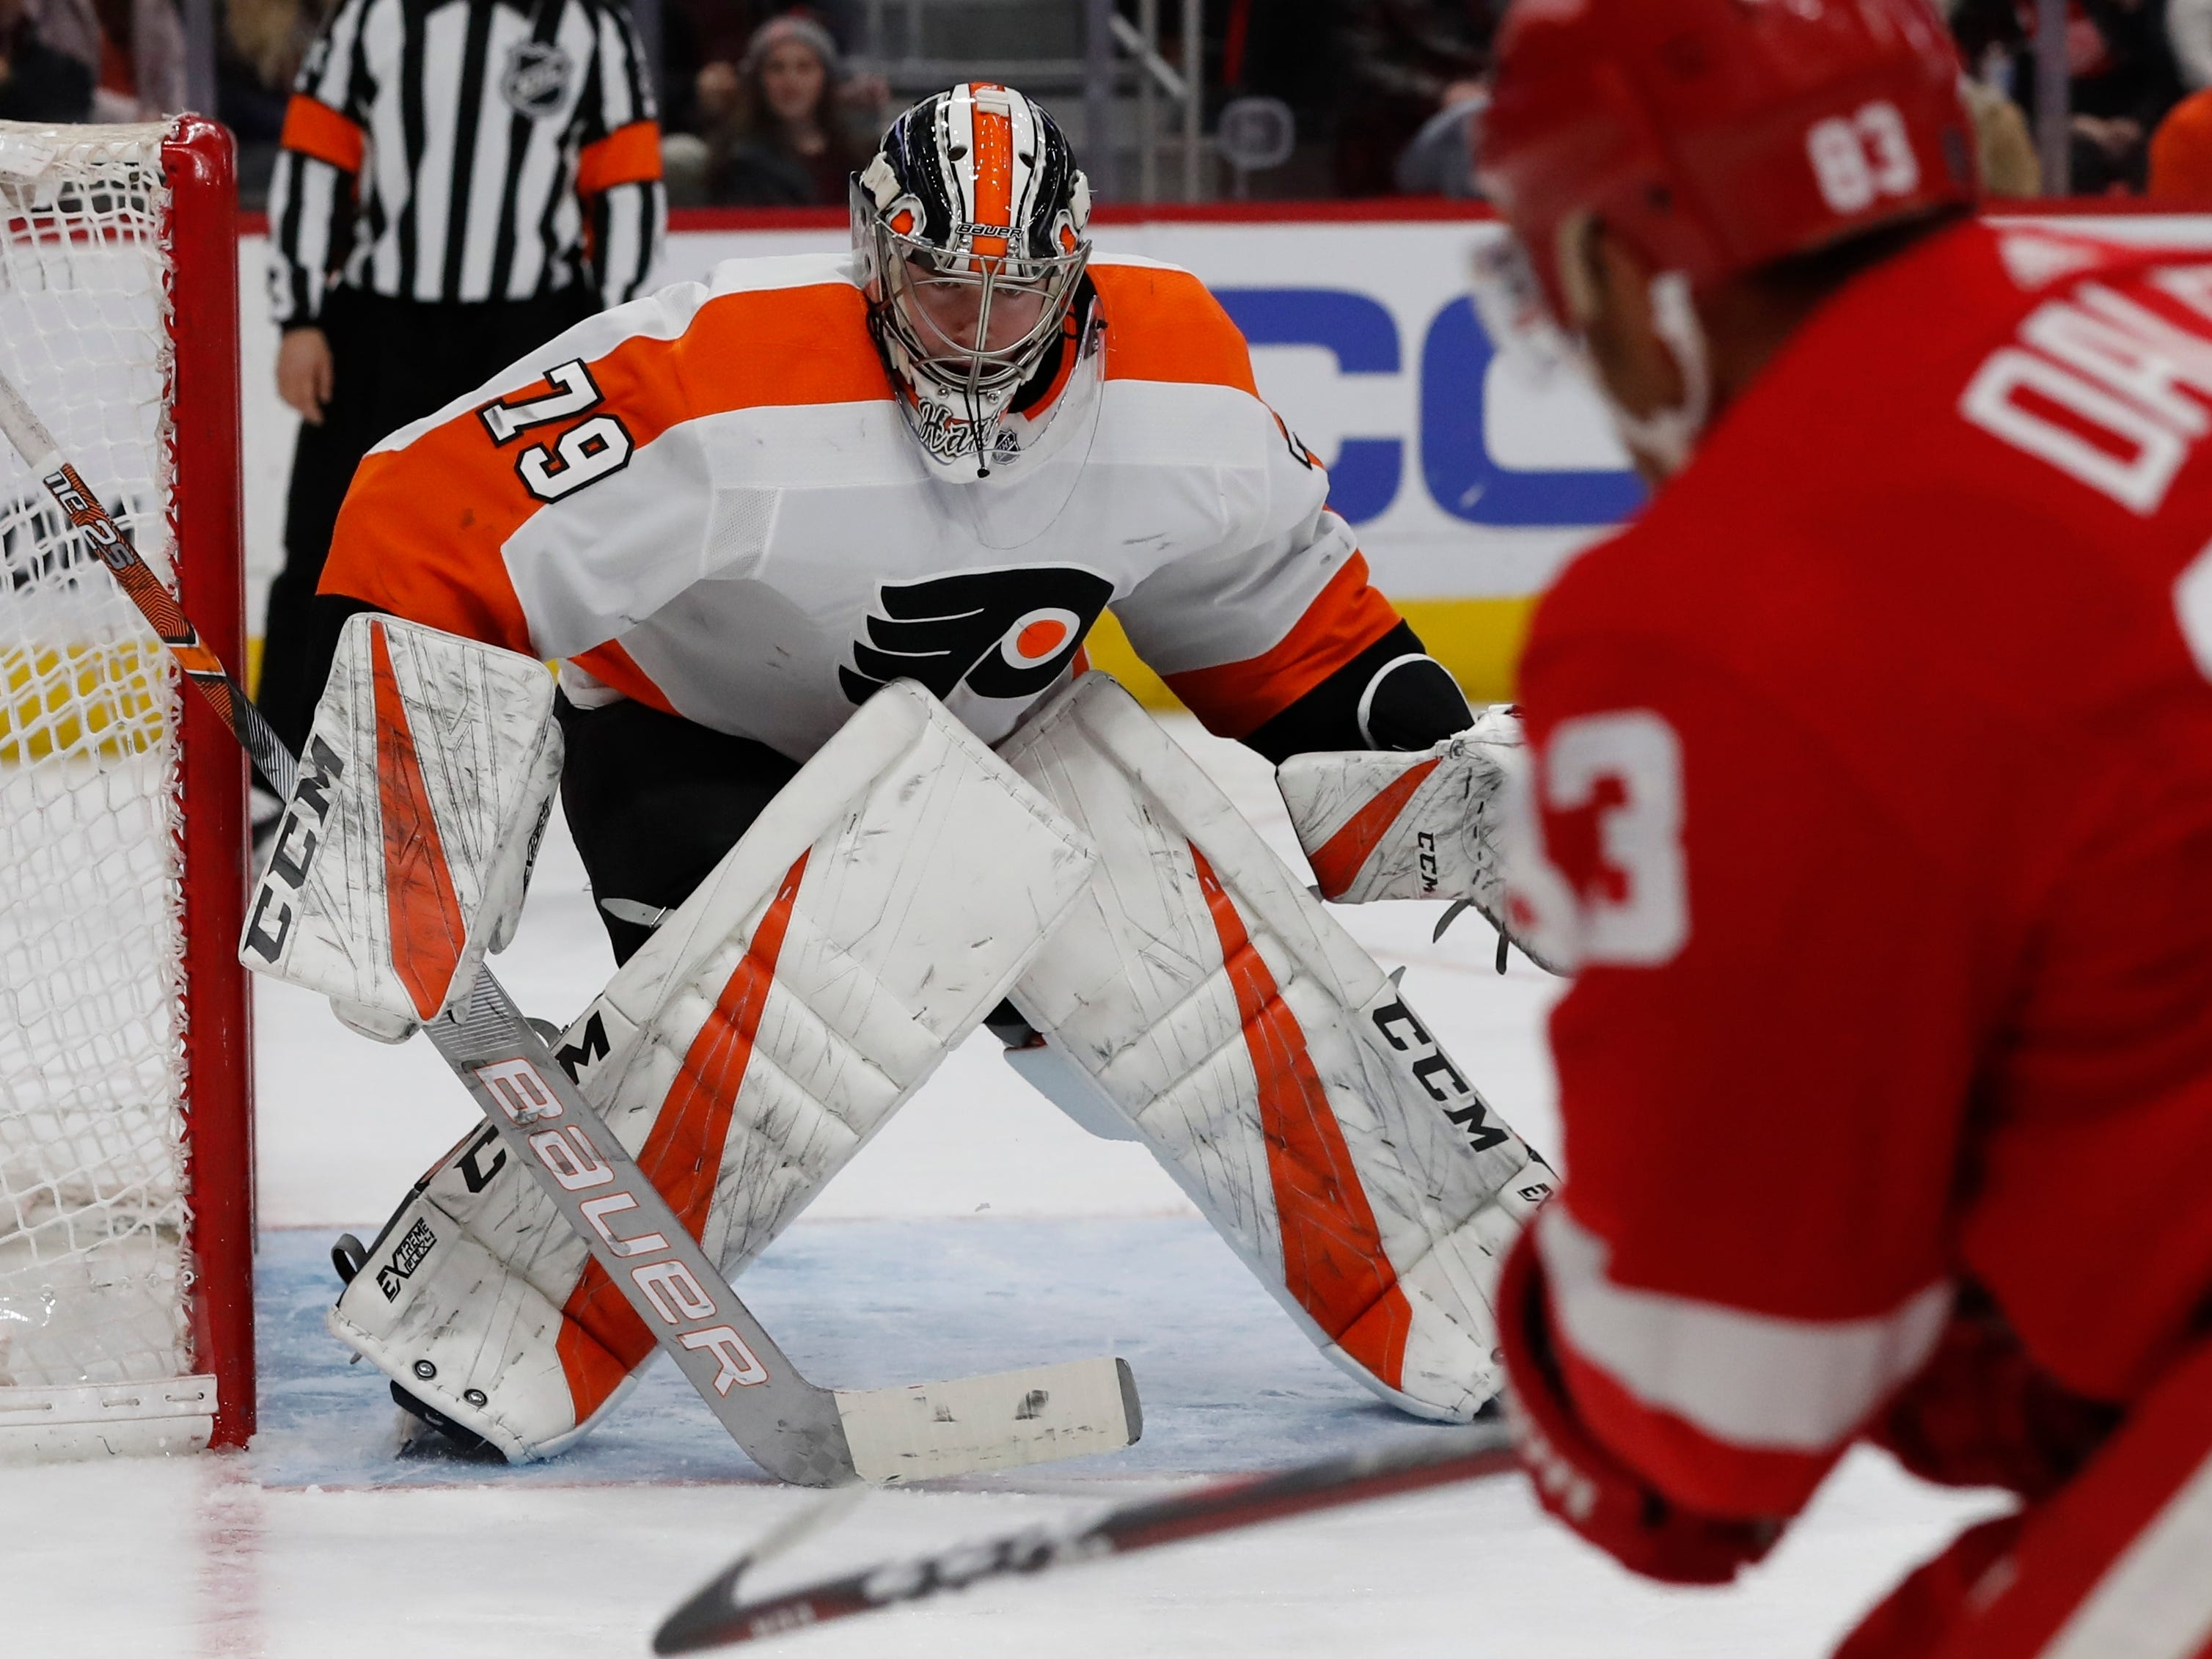 Detroit Red Wings defenseman Trevor Daley (83) shoots towards Flyers goaltender Carter Hart (79) during the second period on Feb. 17, 2019, in Detroit.